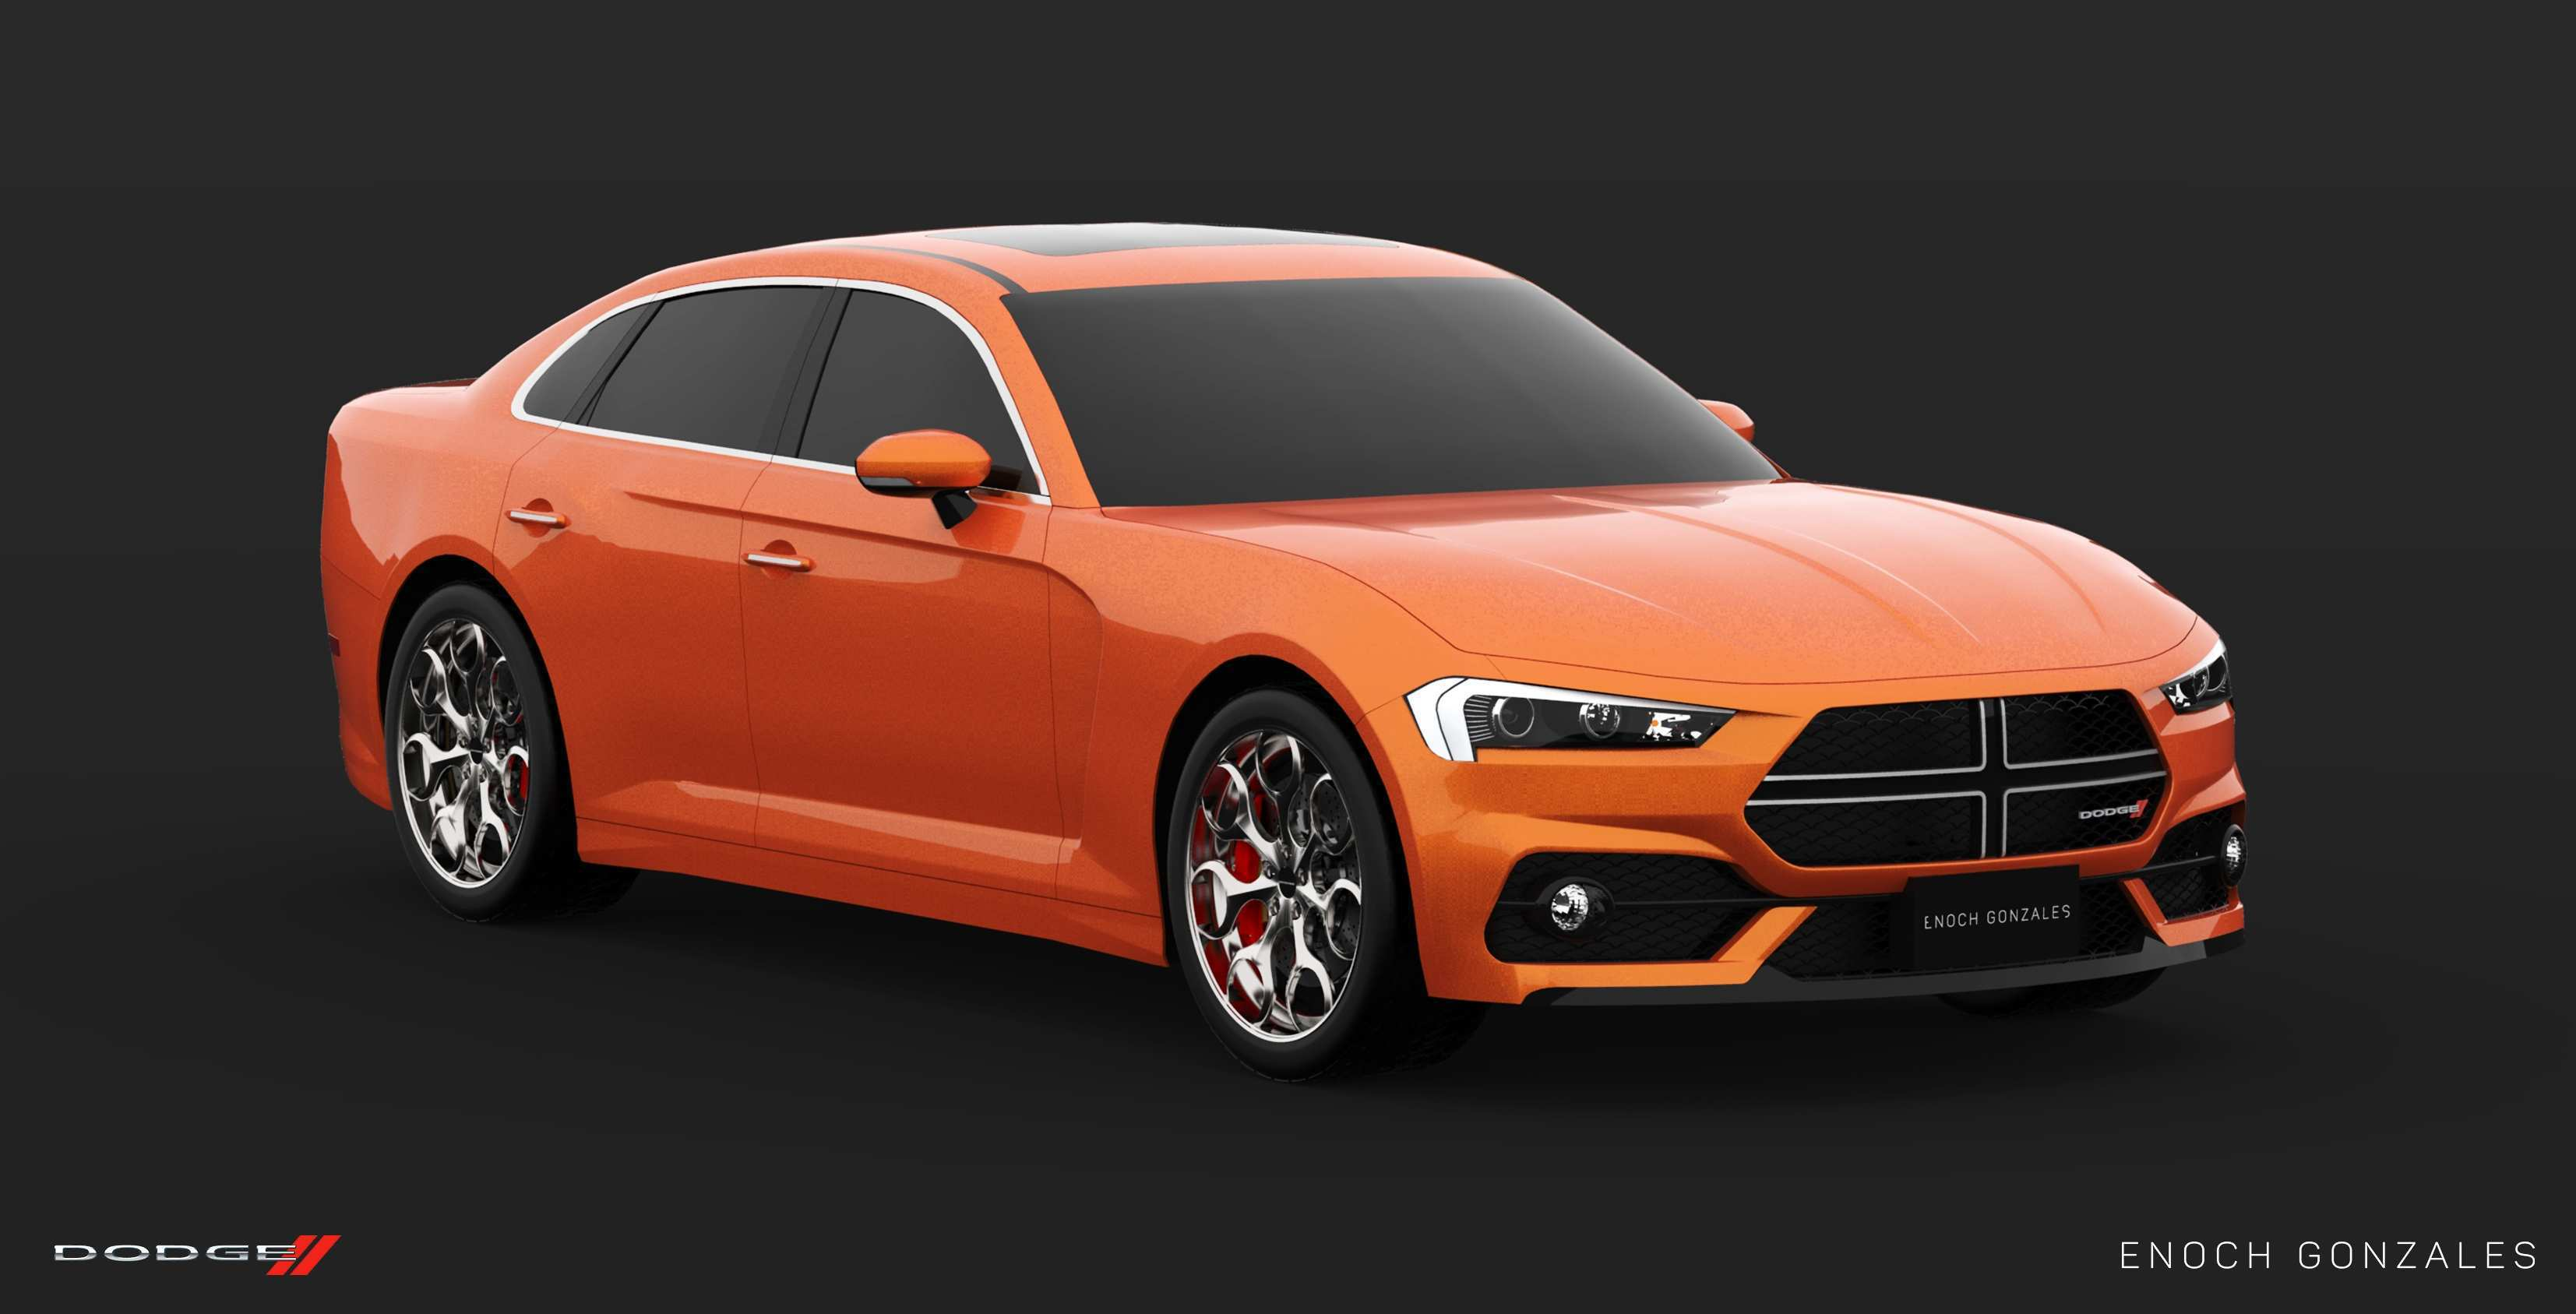 68 Concept of The Dodge Charger 2019 Concept Spy Shoot Release for The Dodge Charger 2019 Concept Spy Shoot